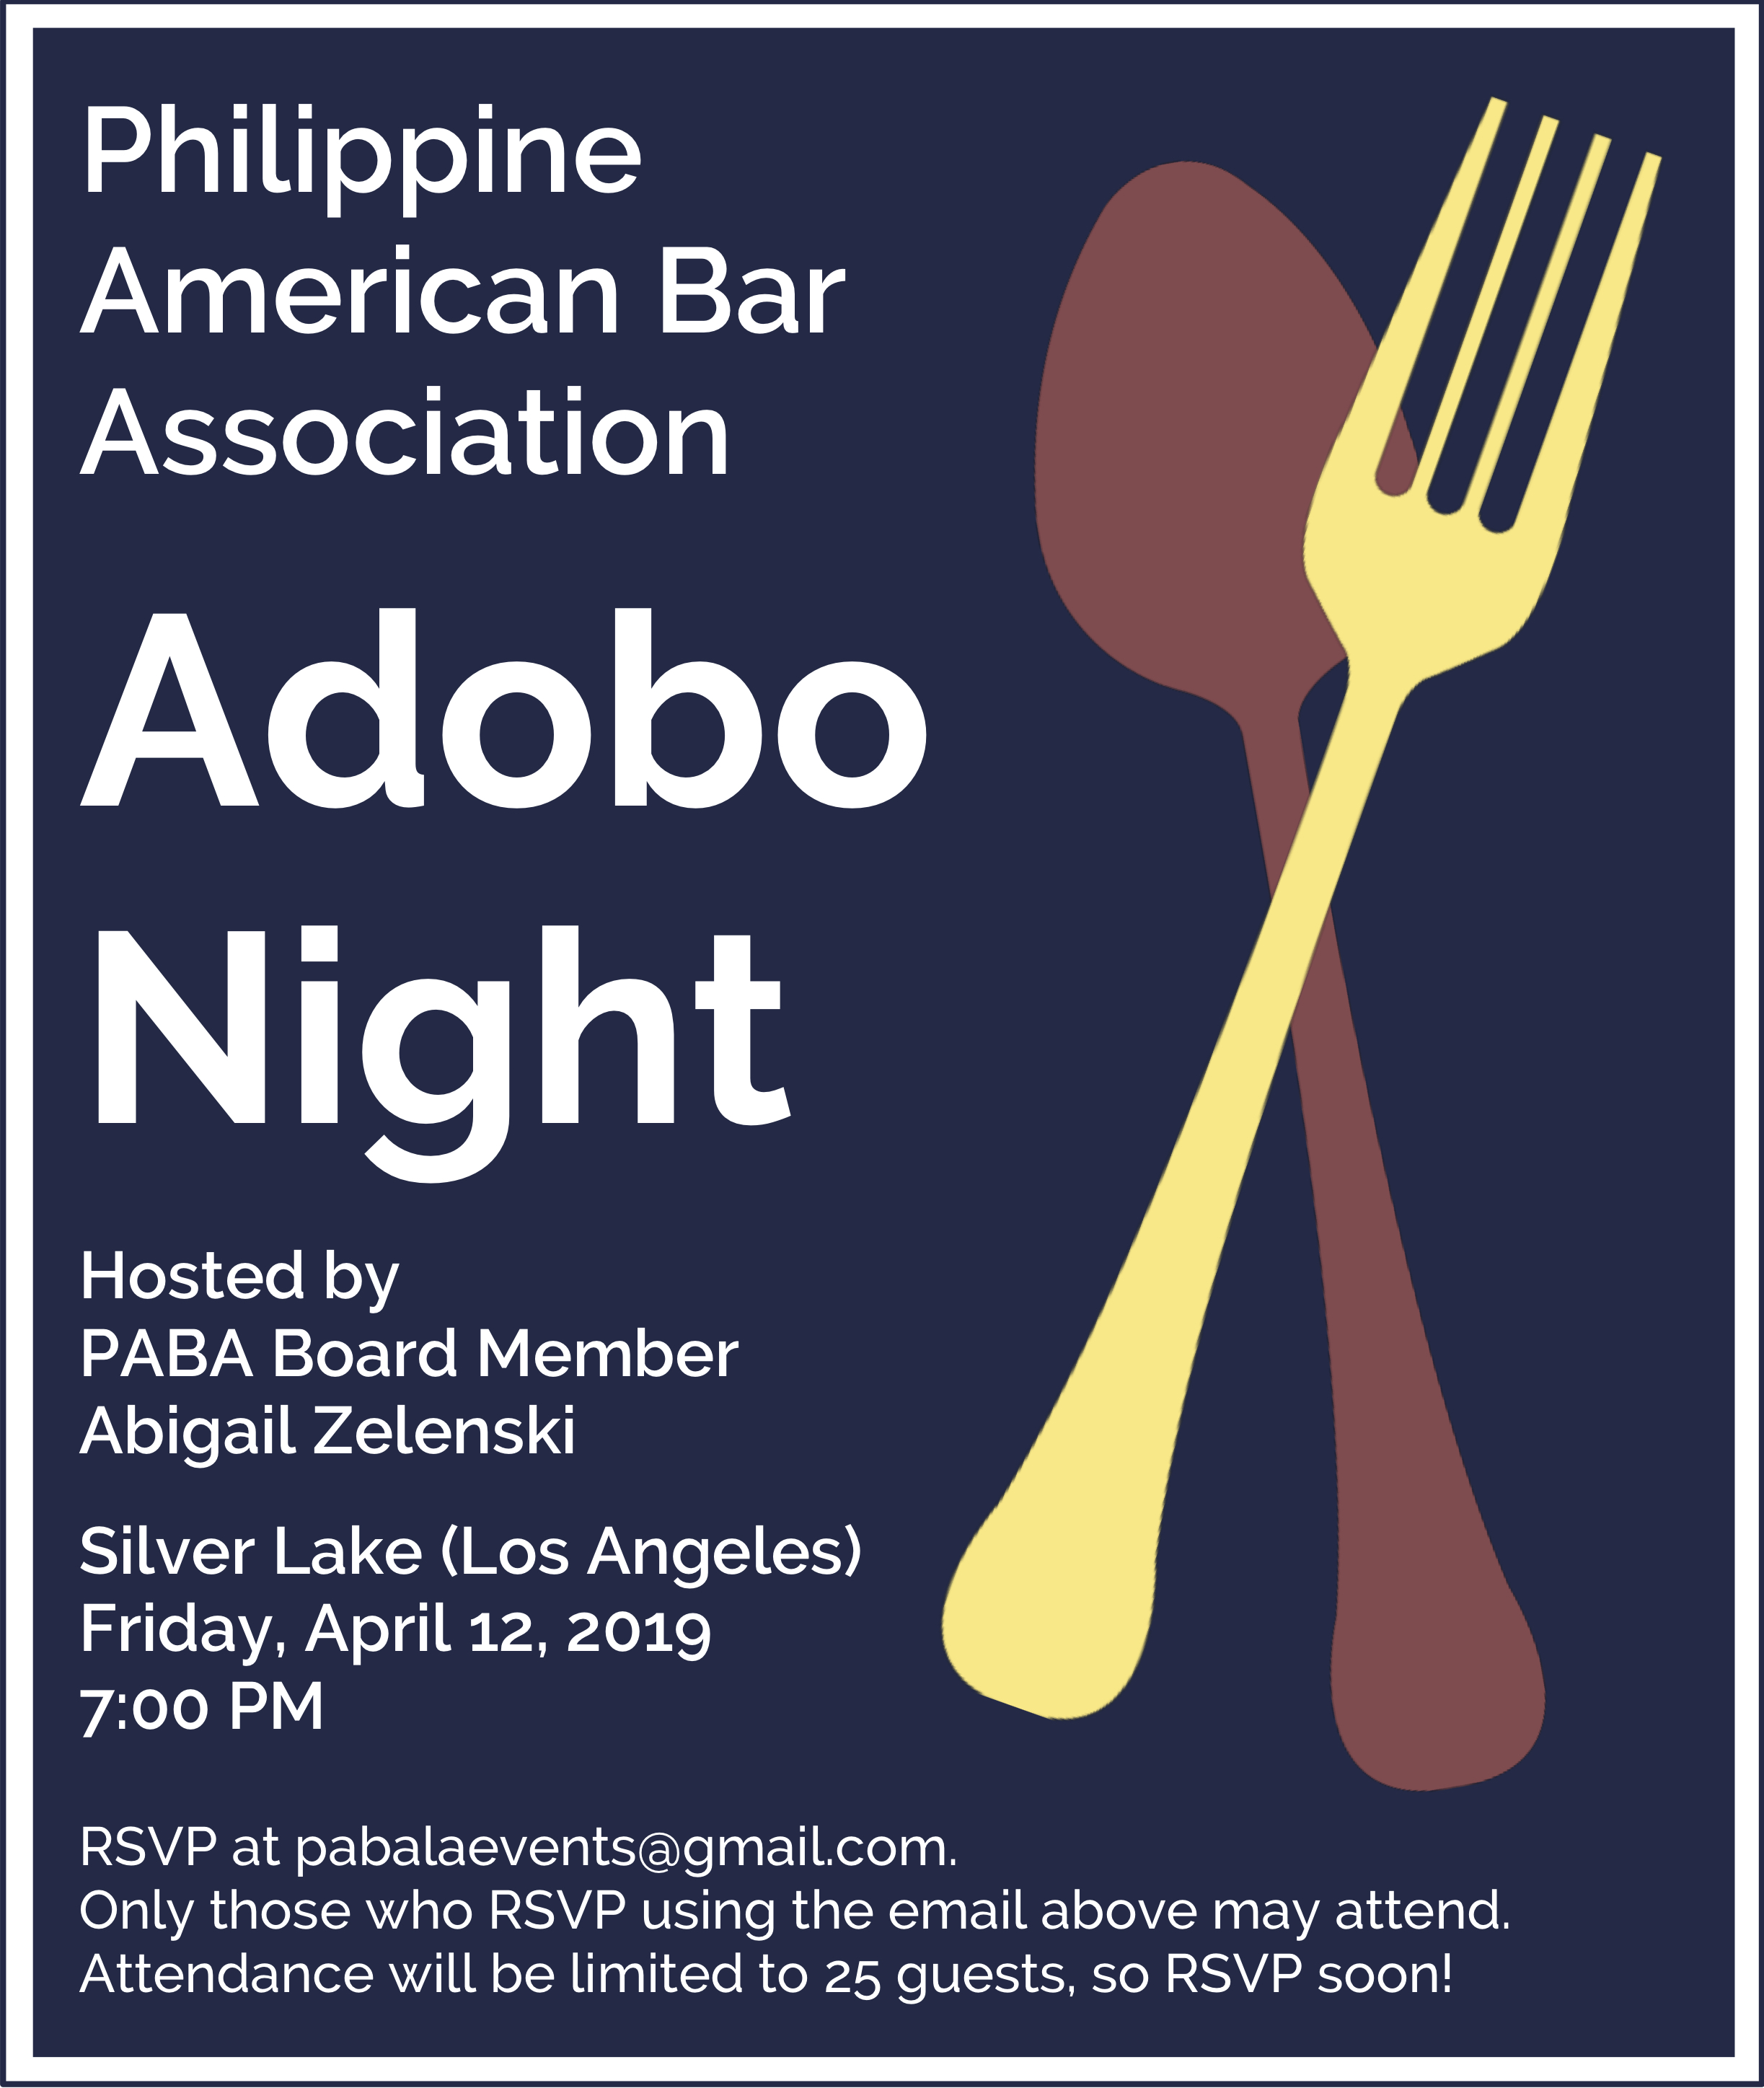 April 12 – Adobo Night in Silver Lake